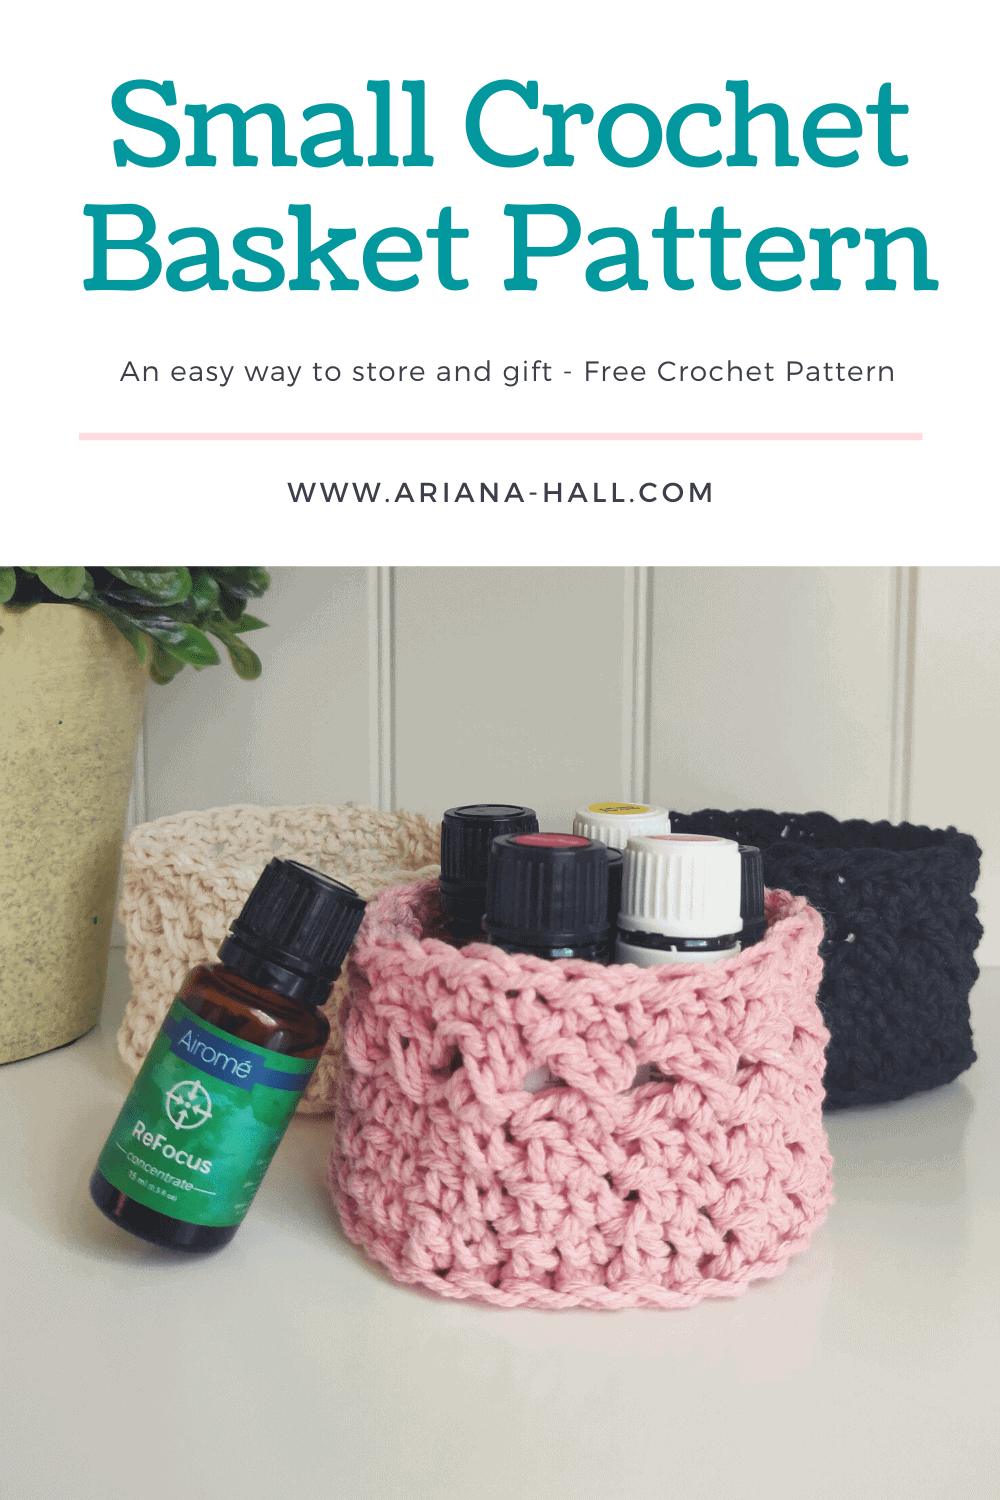 Crochet basket with essential oils inside.